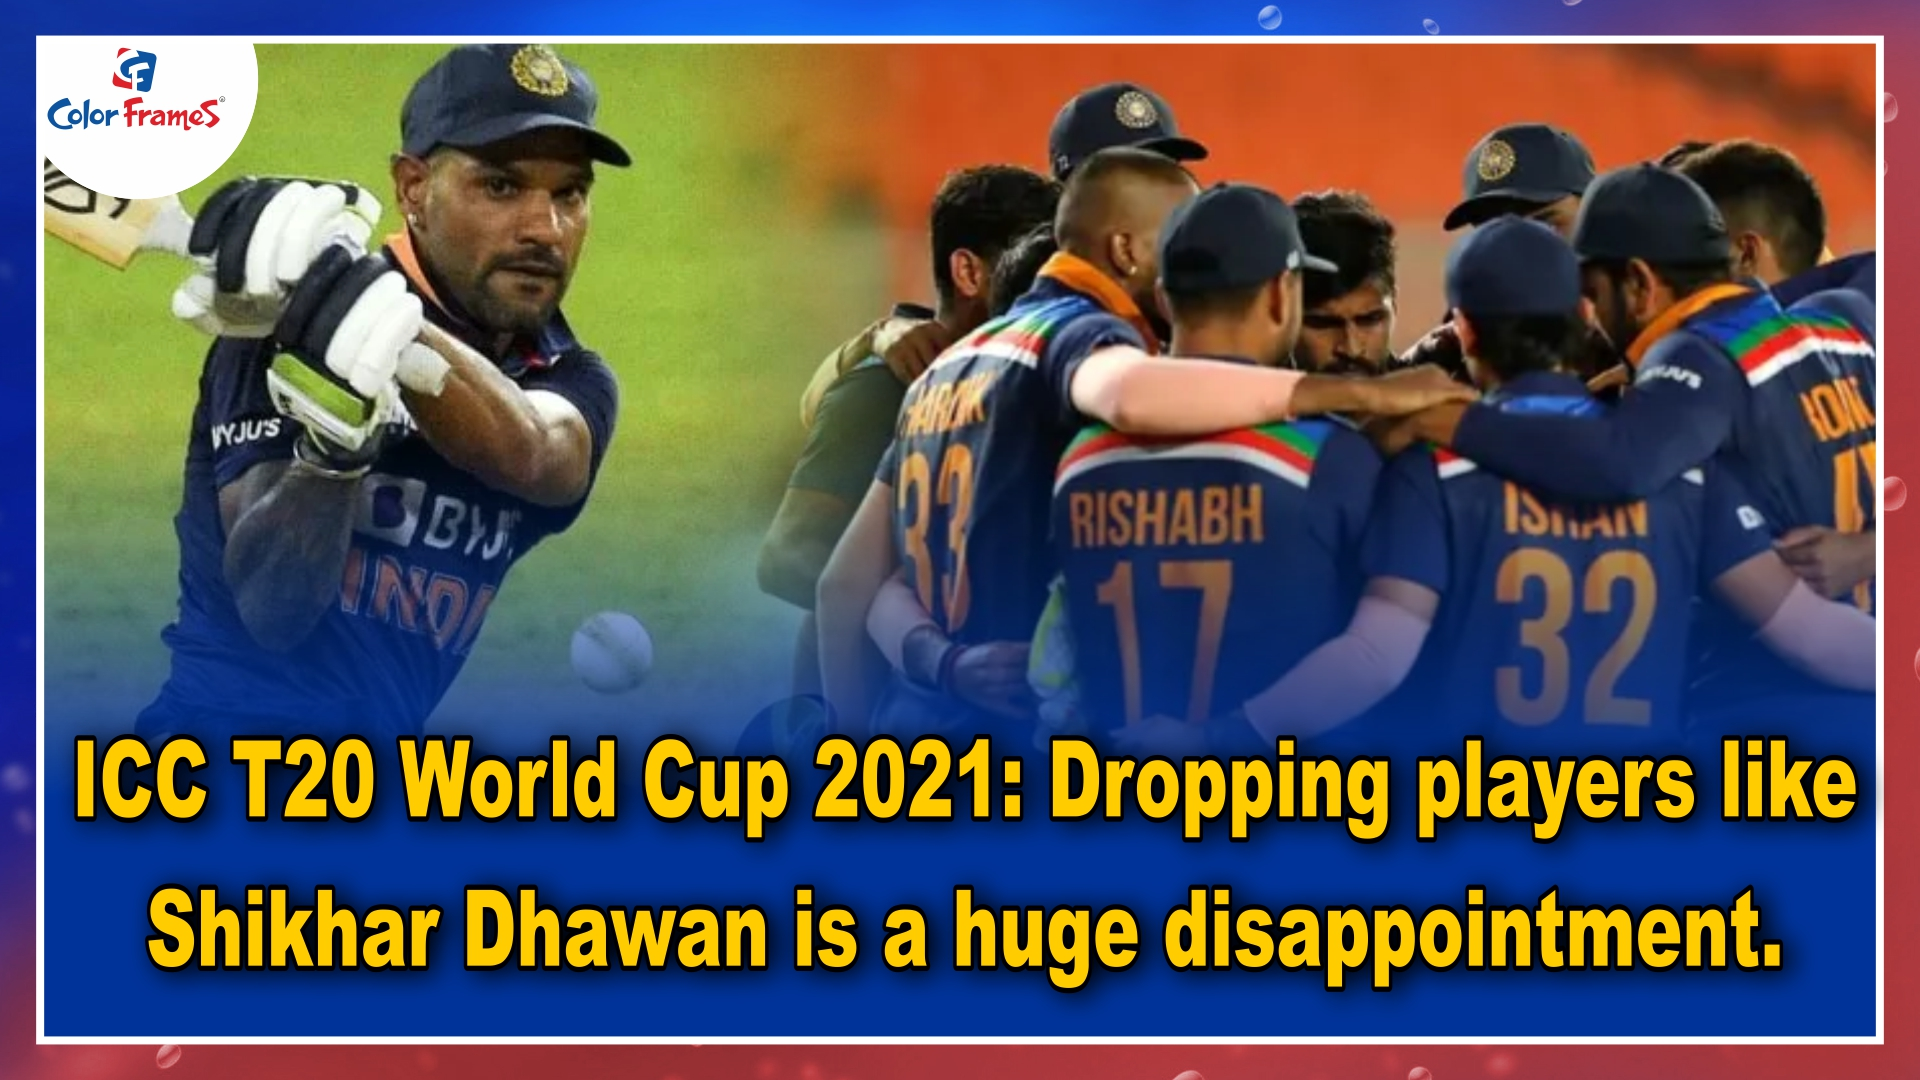 ICC T20 World Cup 2021: Dropping players like Shikhar Dhawan is a huge disappointment.